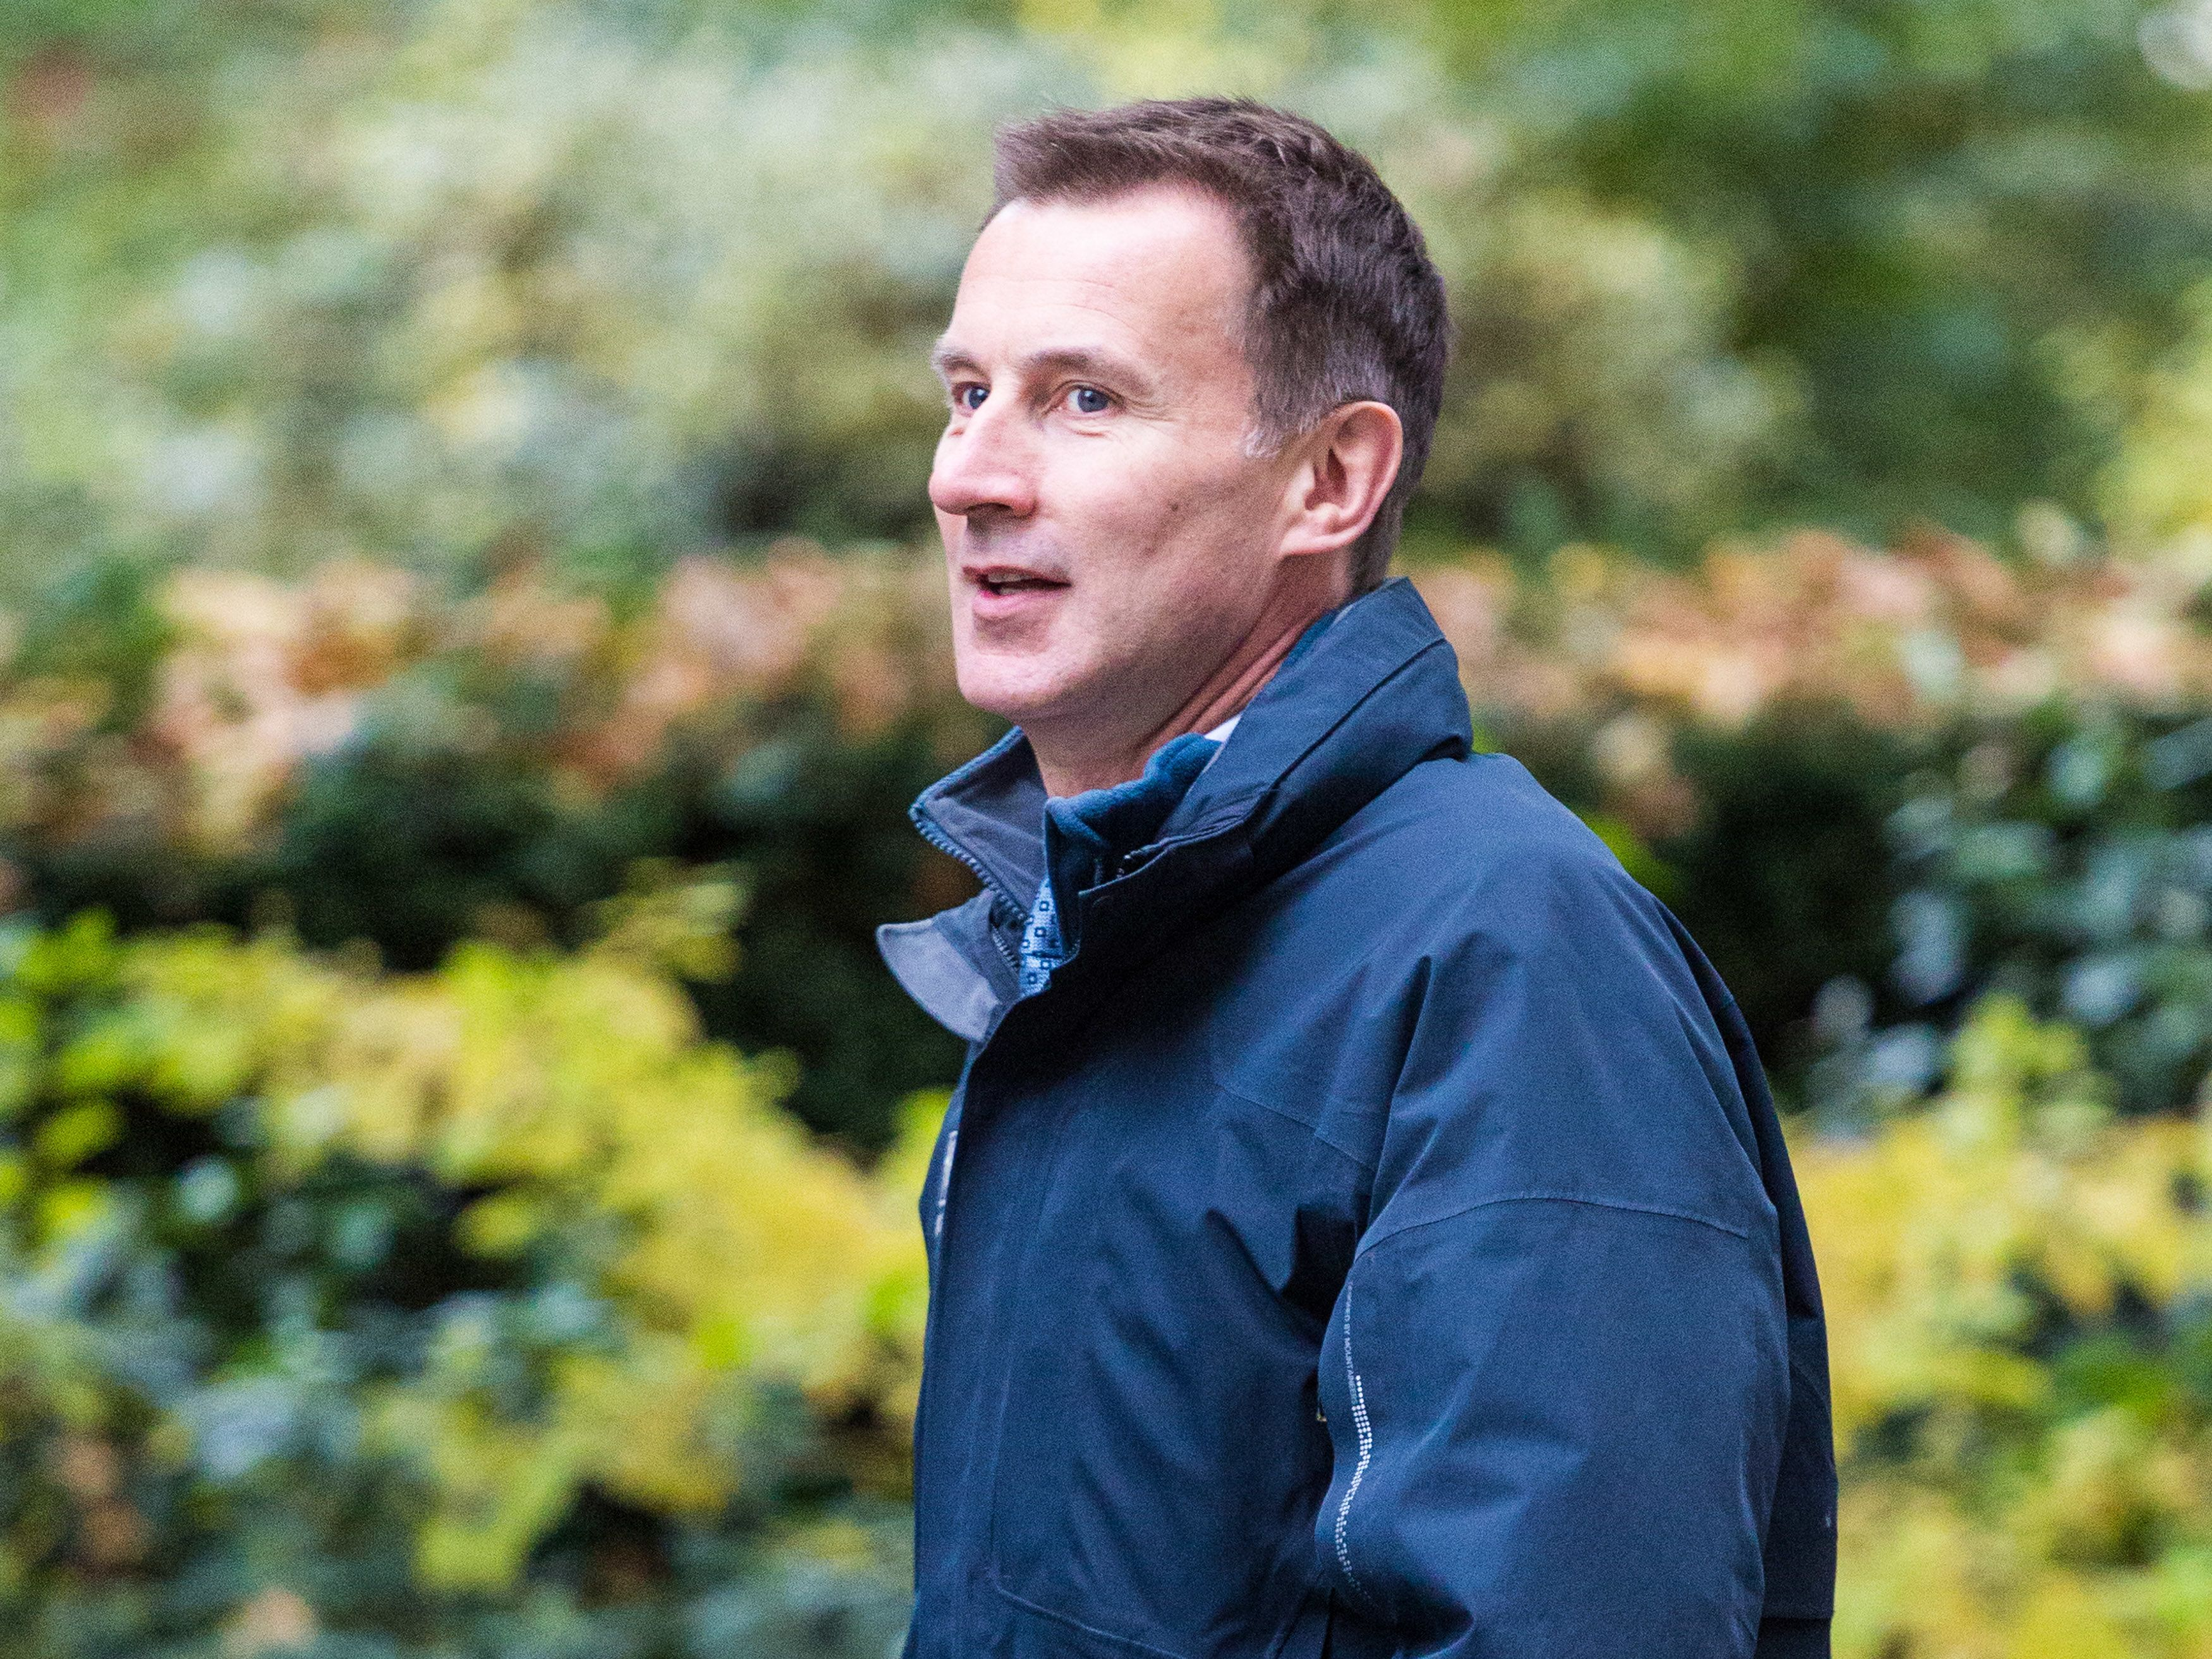 Jeremy Hunt Tells Facebook To 'Stay Away From My